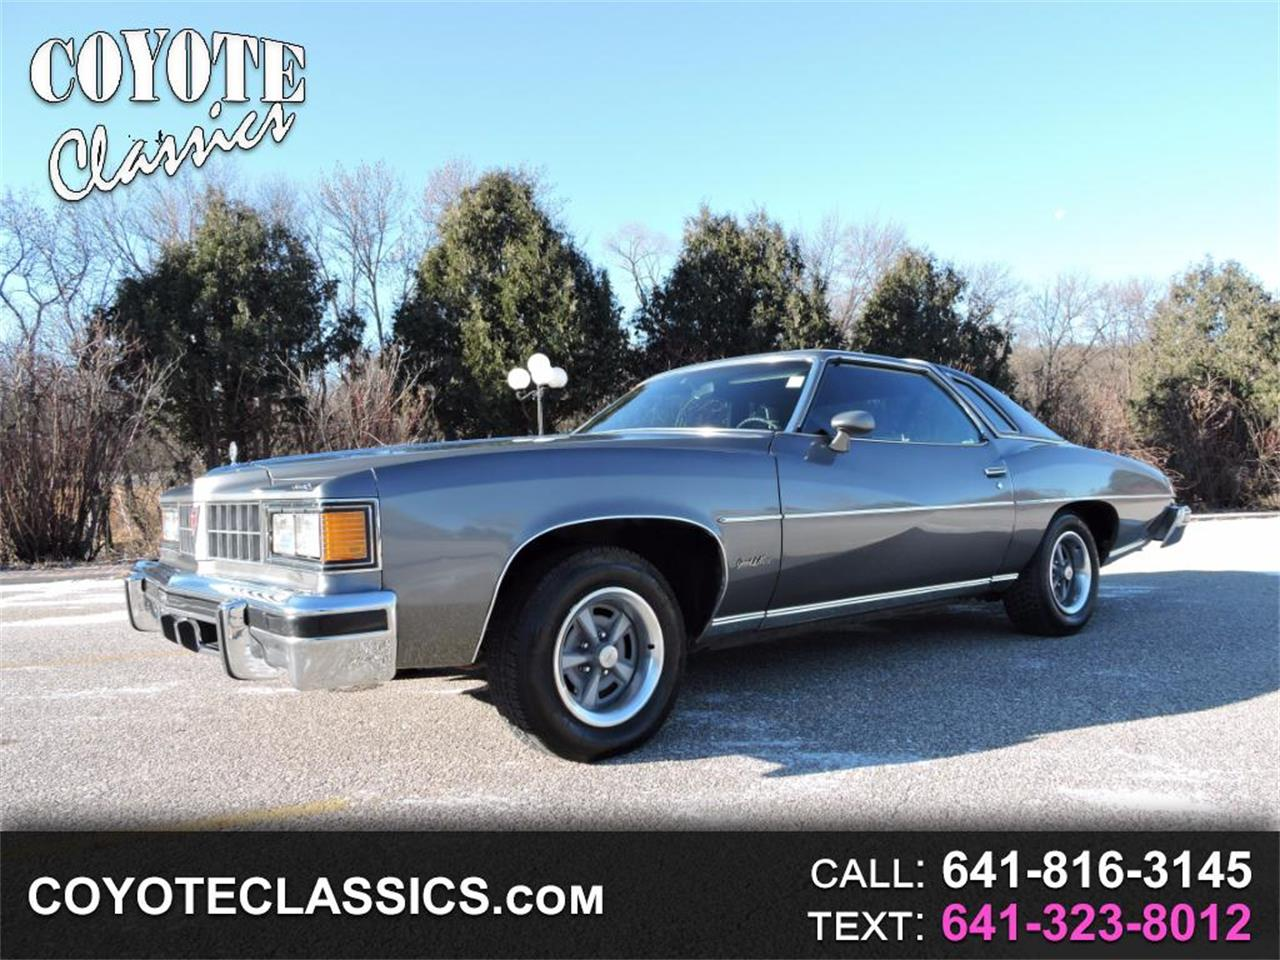 1977 Pontiac Grand LeMans for sale in Greene, IA